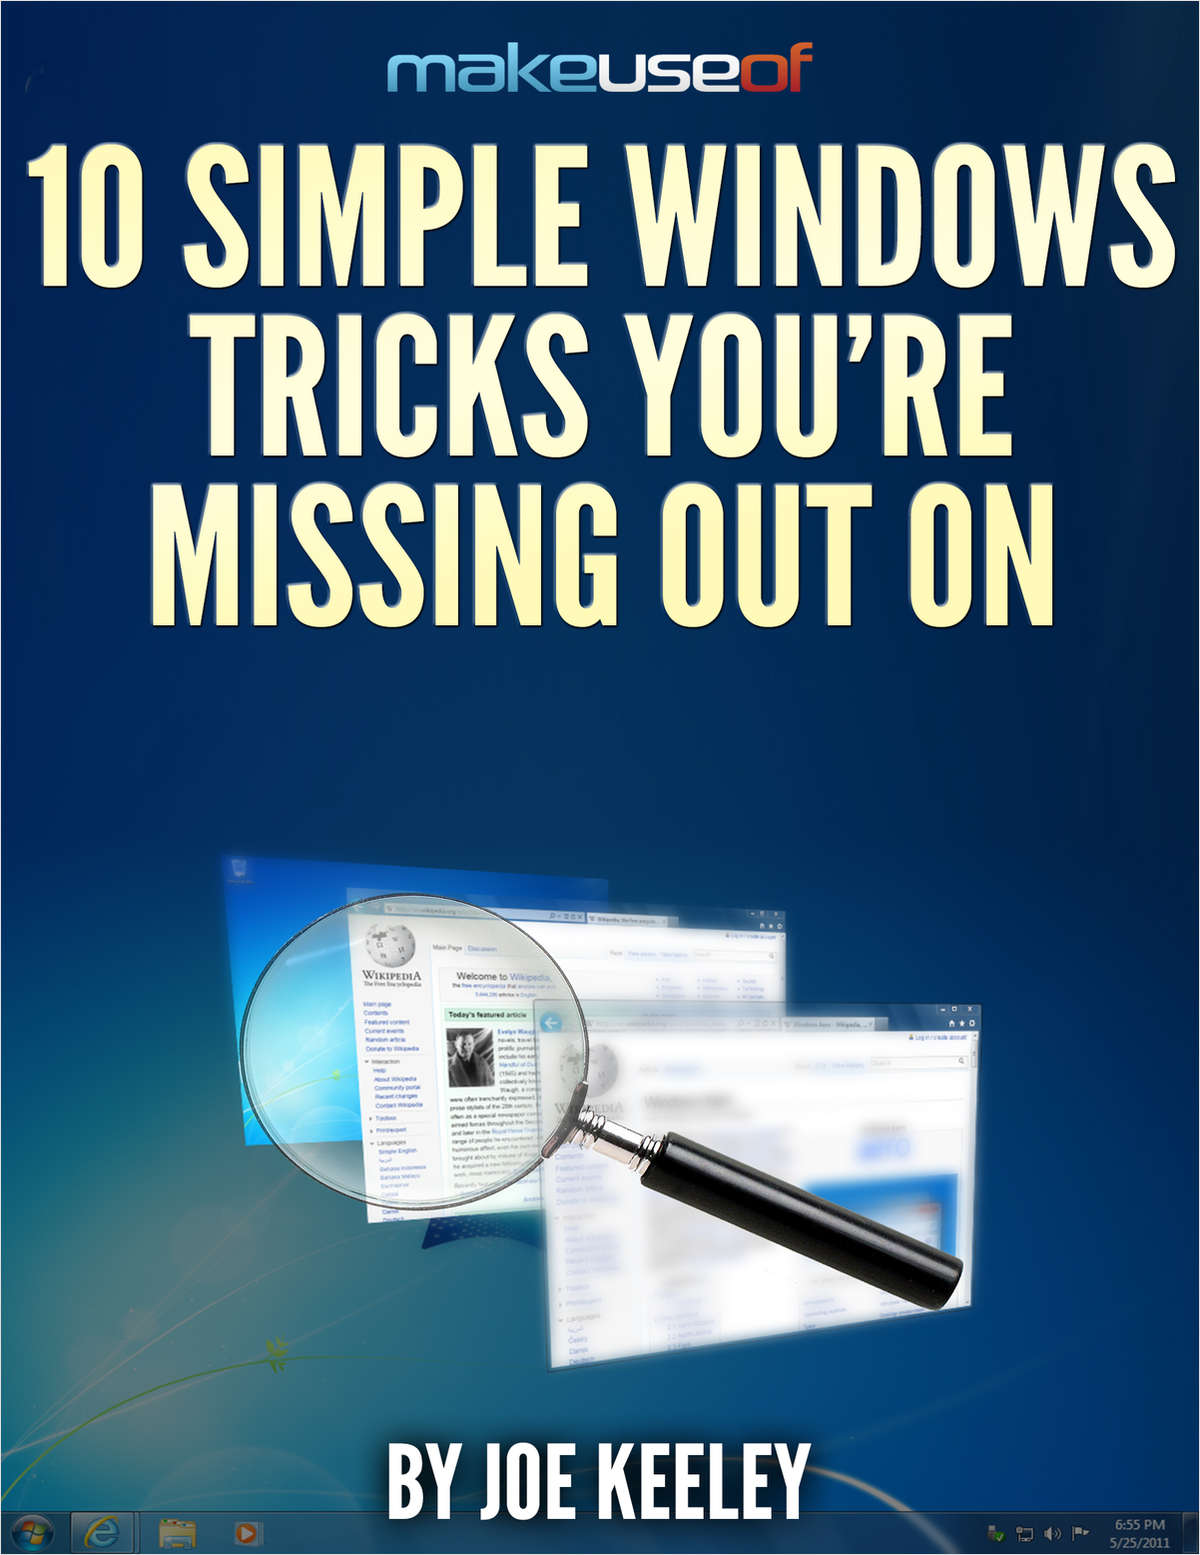 10 Simple Windows Tricks You're Missing Out On